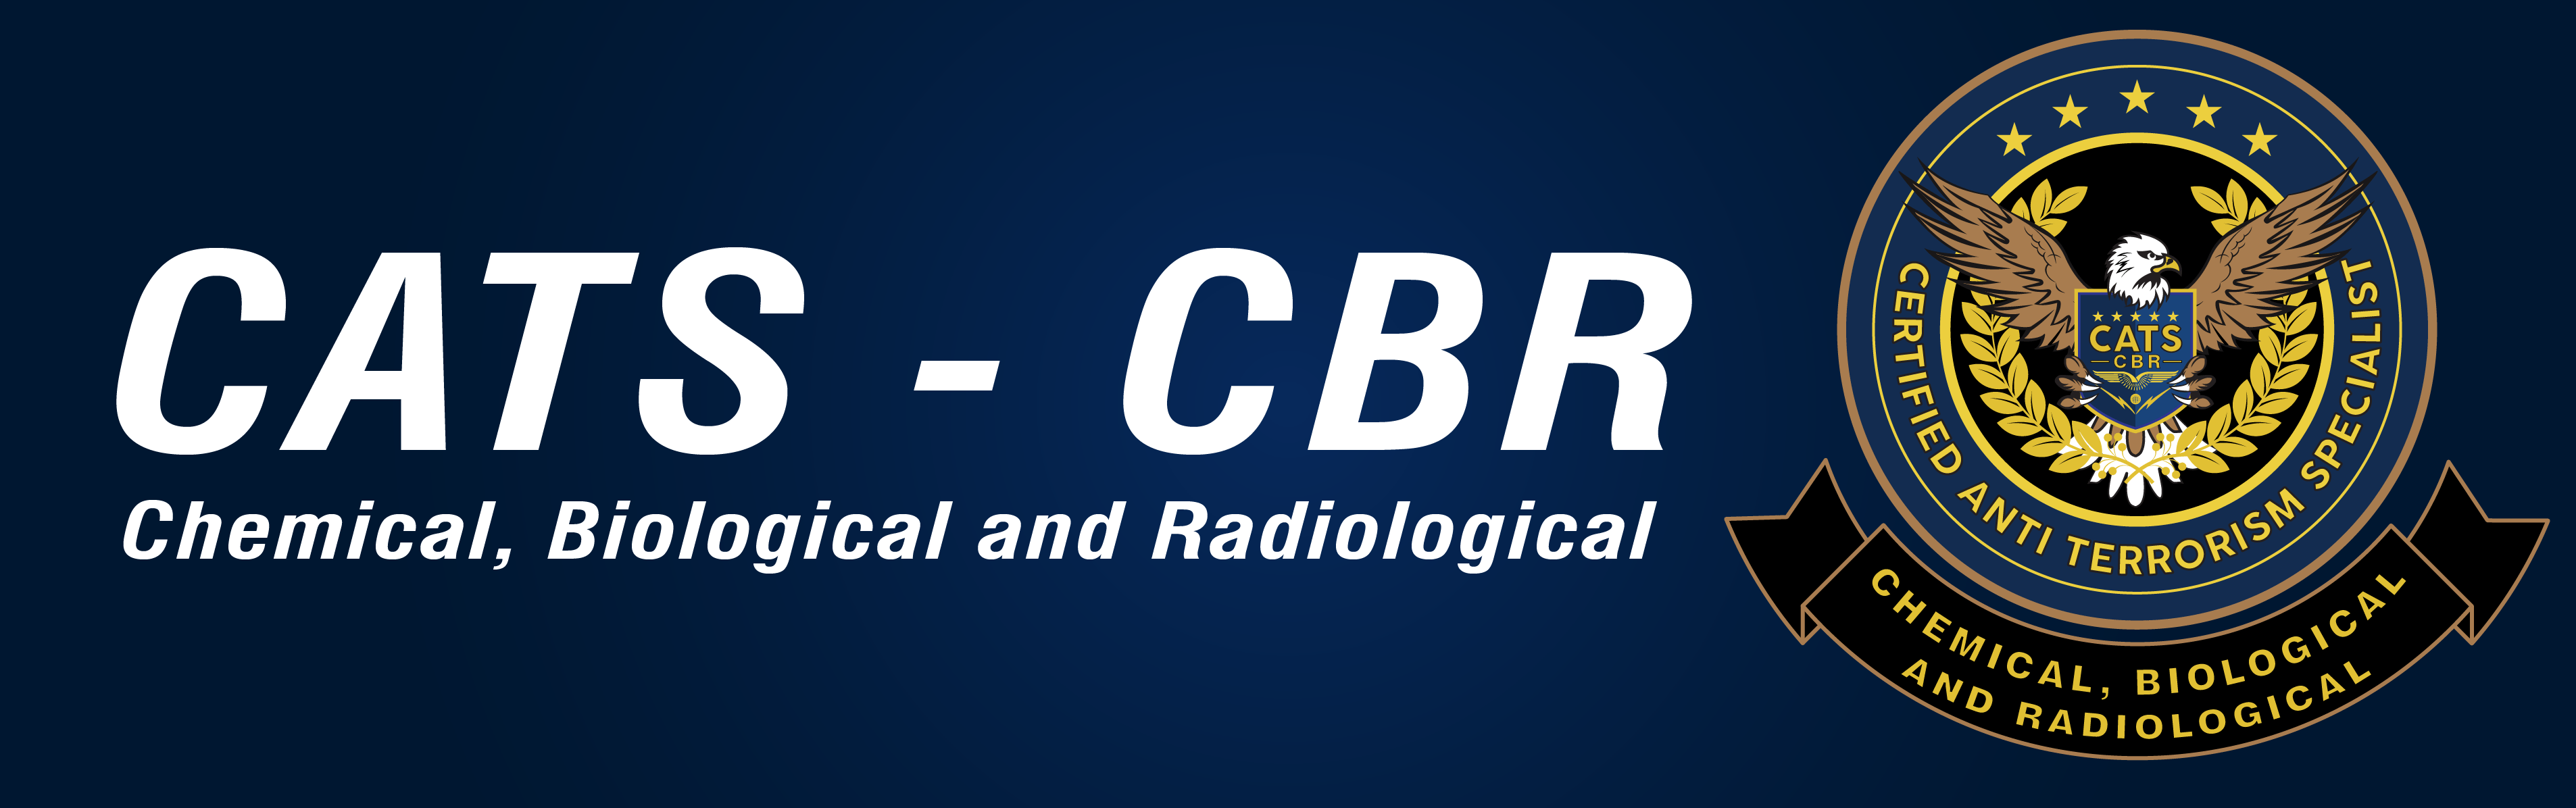 Chemical, Biological, and Radiological